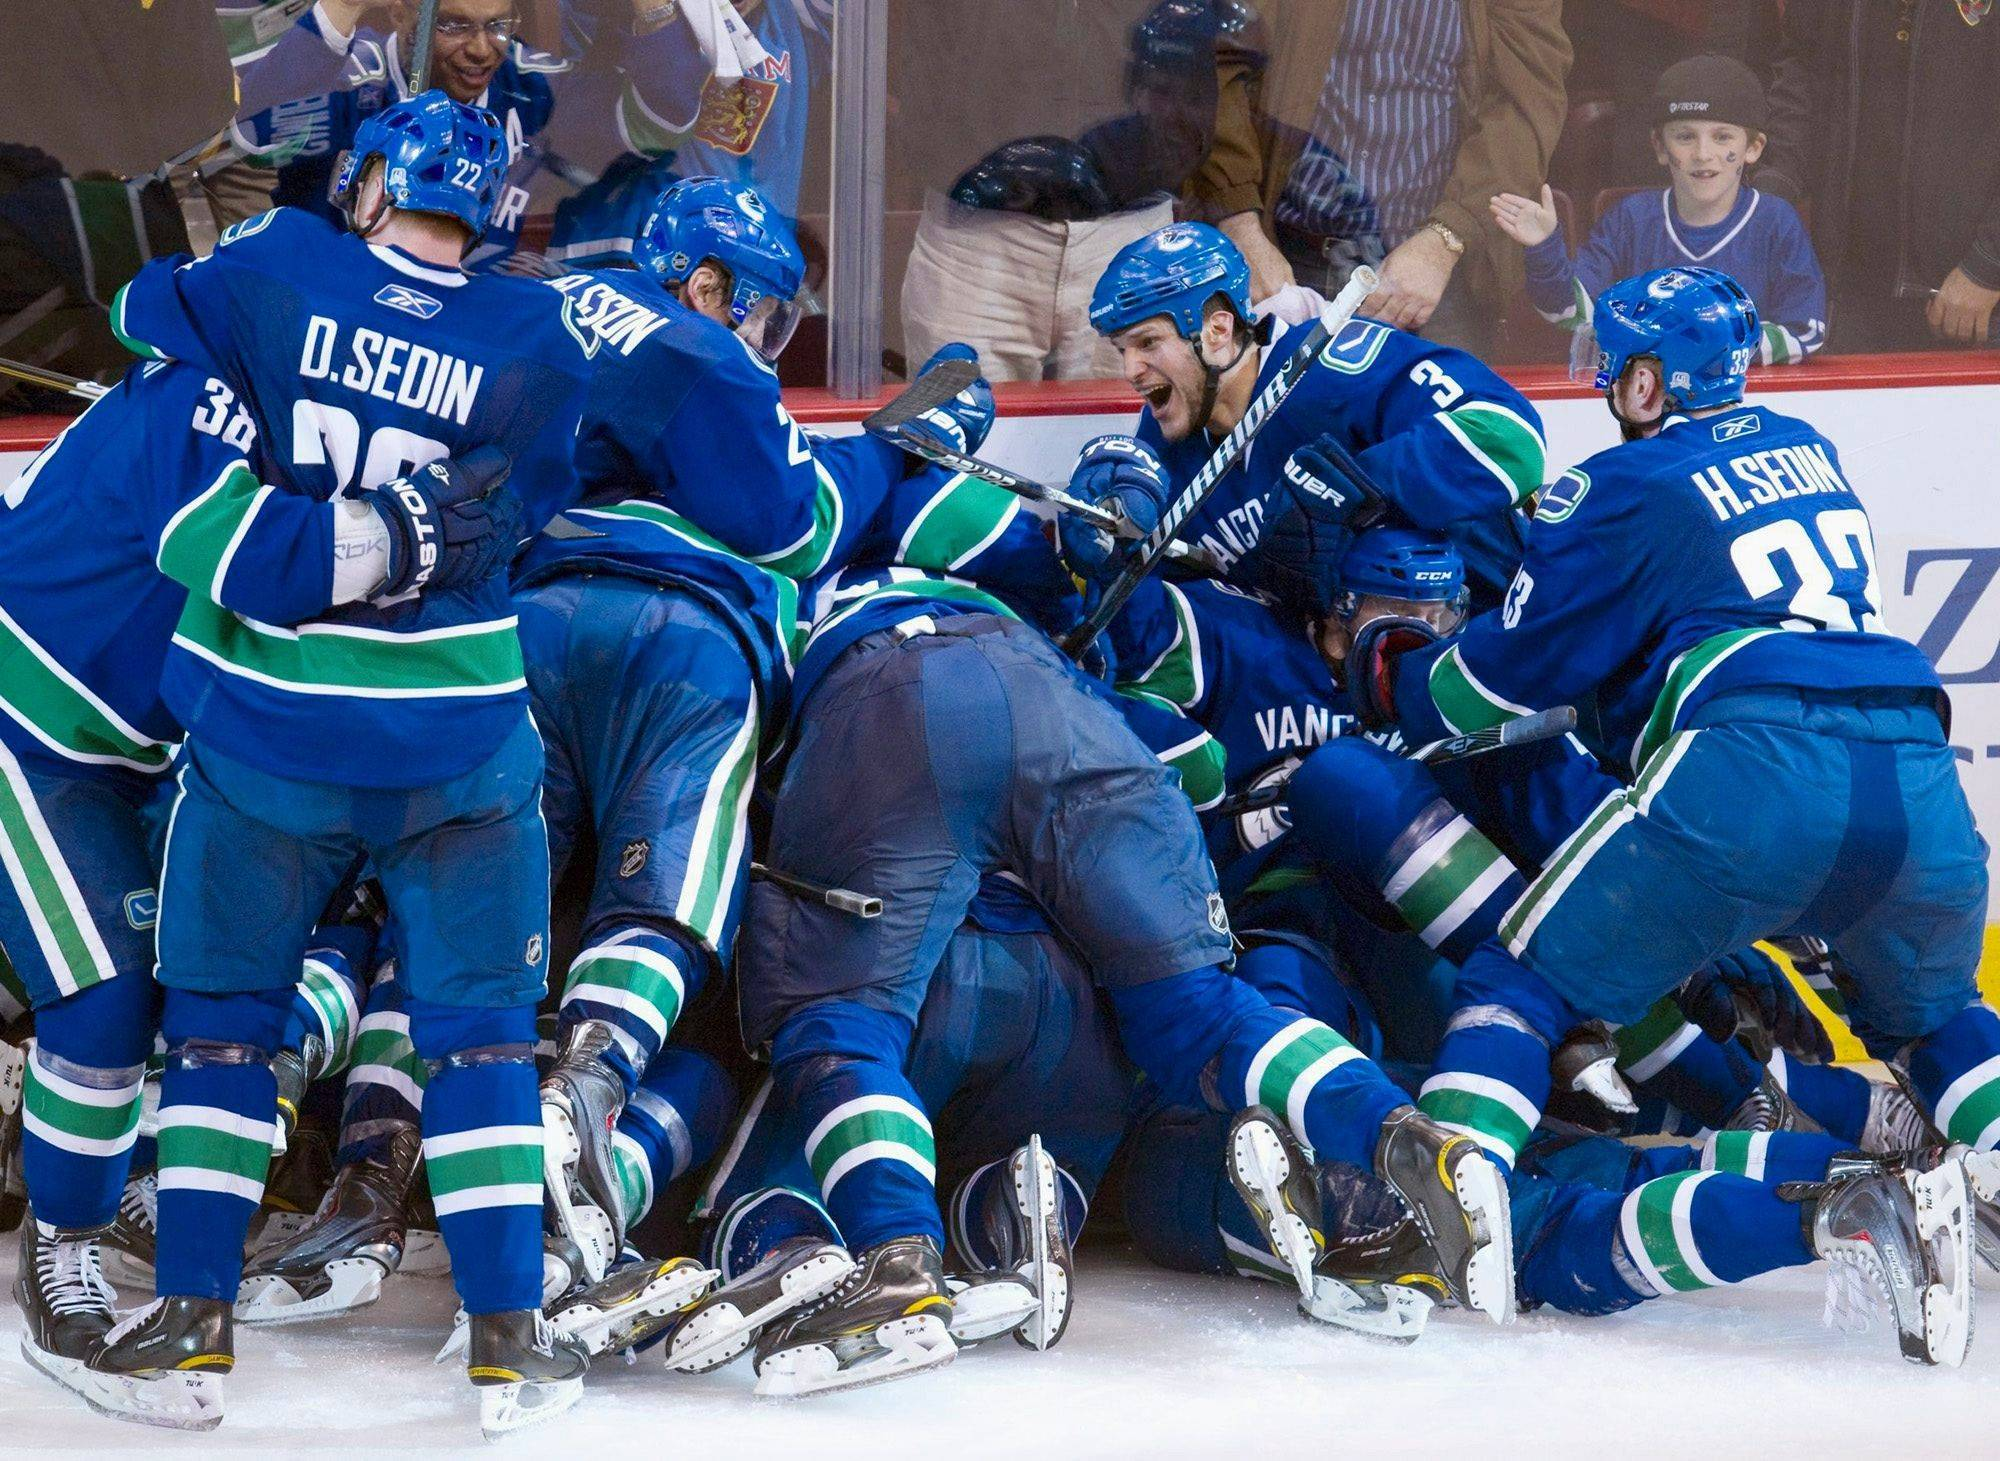 The Vancouver Canucks celebrate Alex Burrows game winning goal during the overtime period against the Chicago Blackhawks Tuesday April 26, 2011.